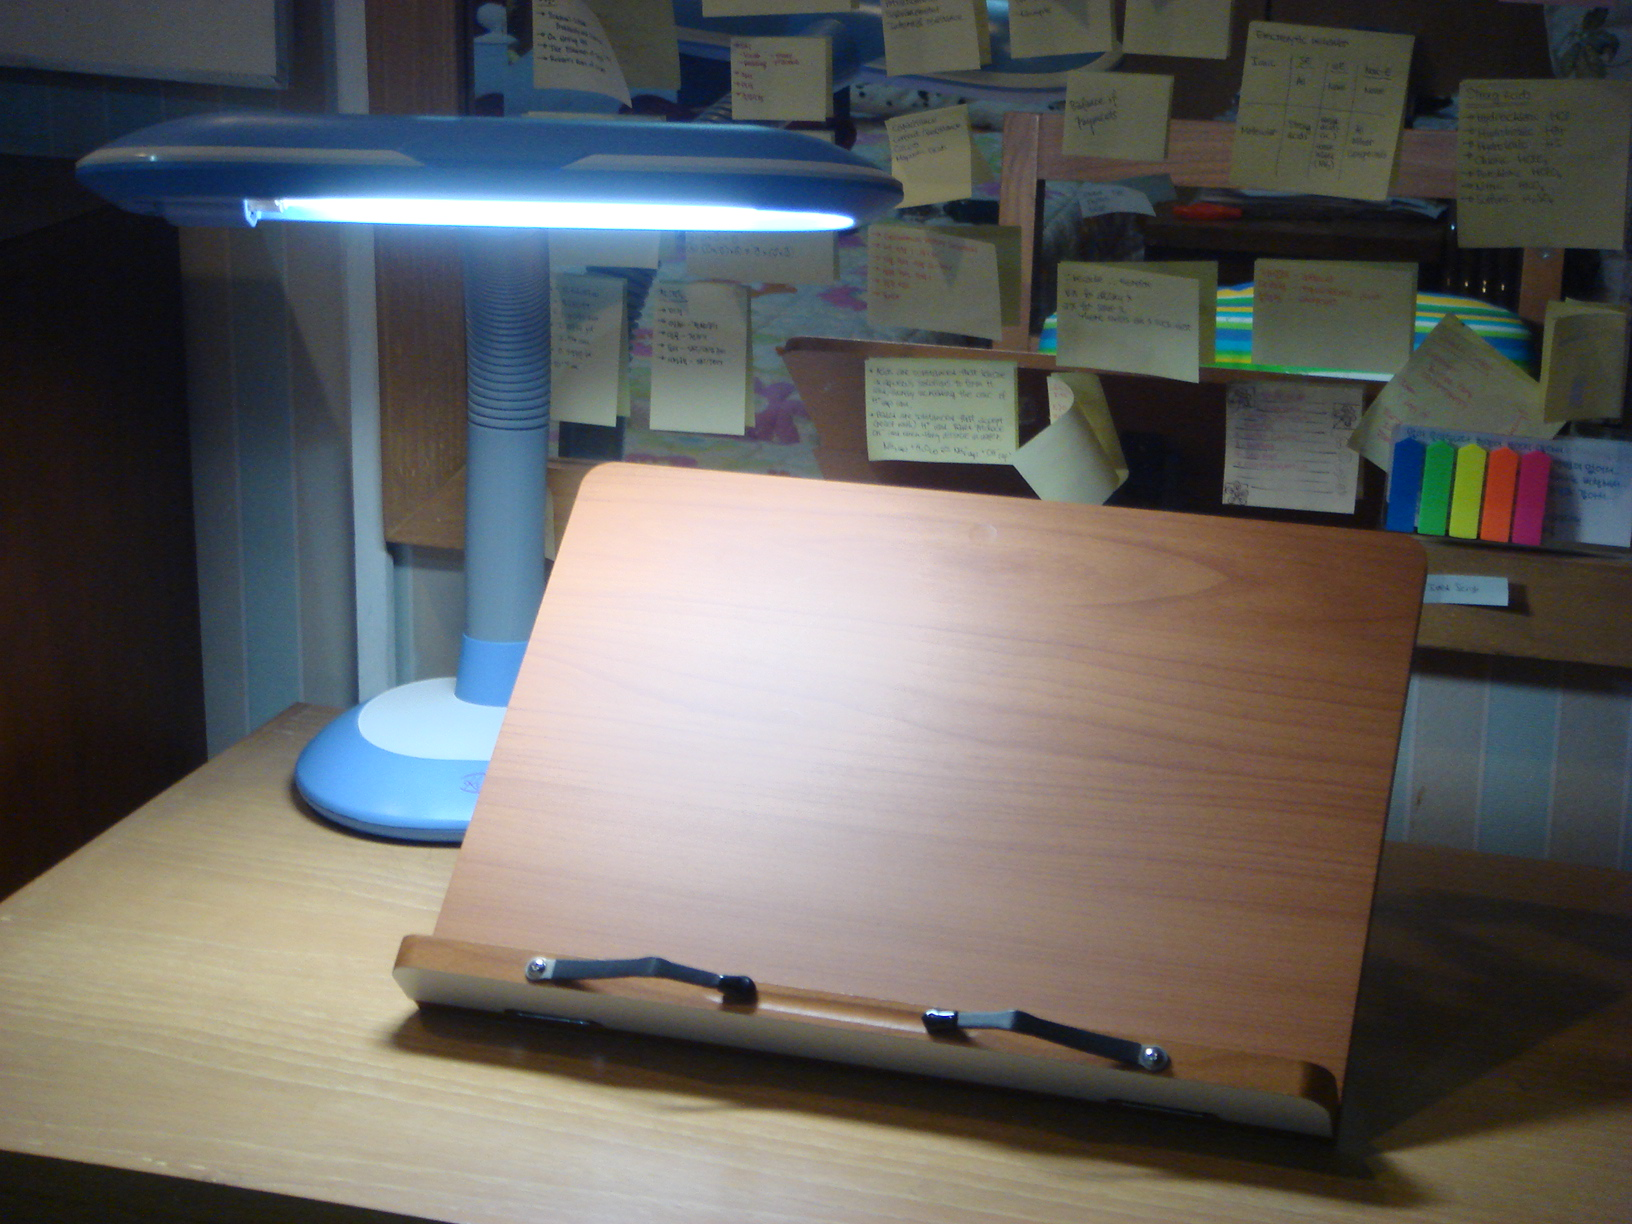 FileBookstand with desk lampjpg Wikimedia Commons – Lamp on Desk